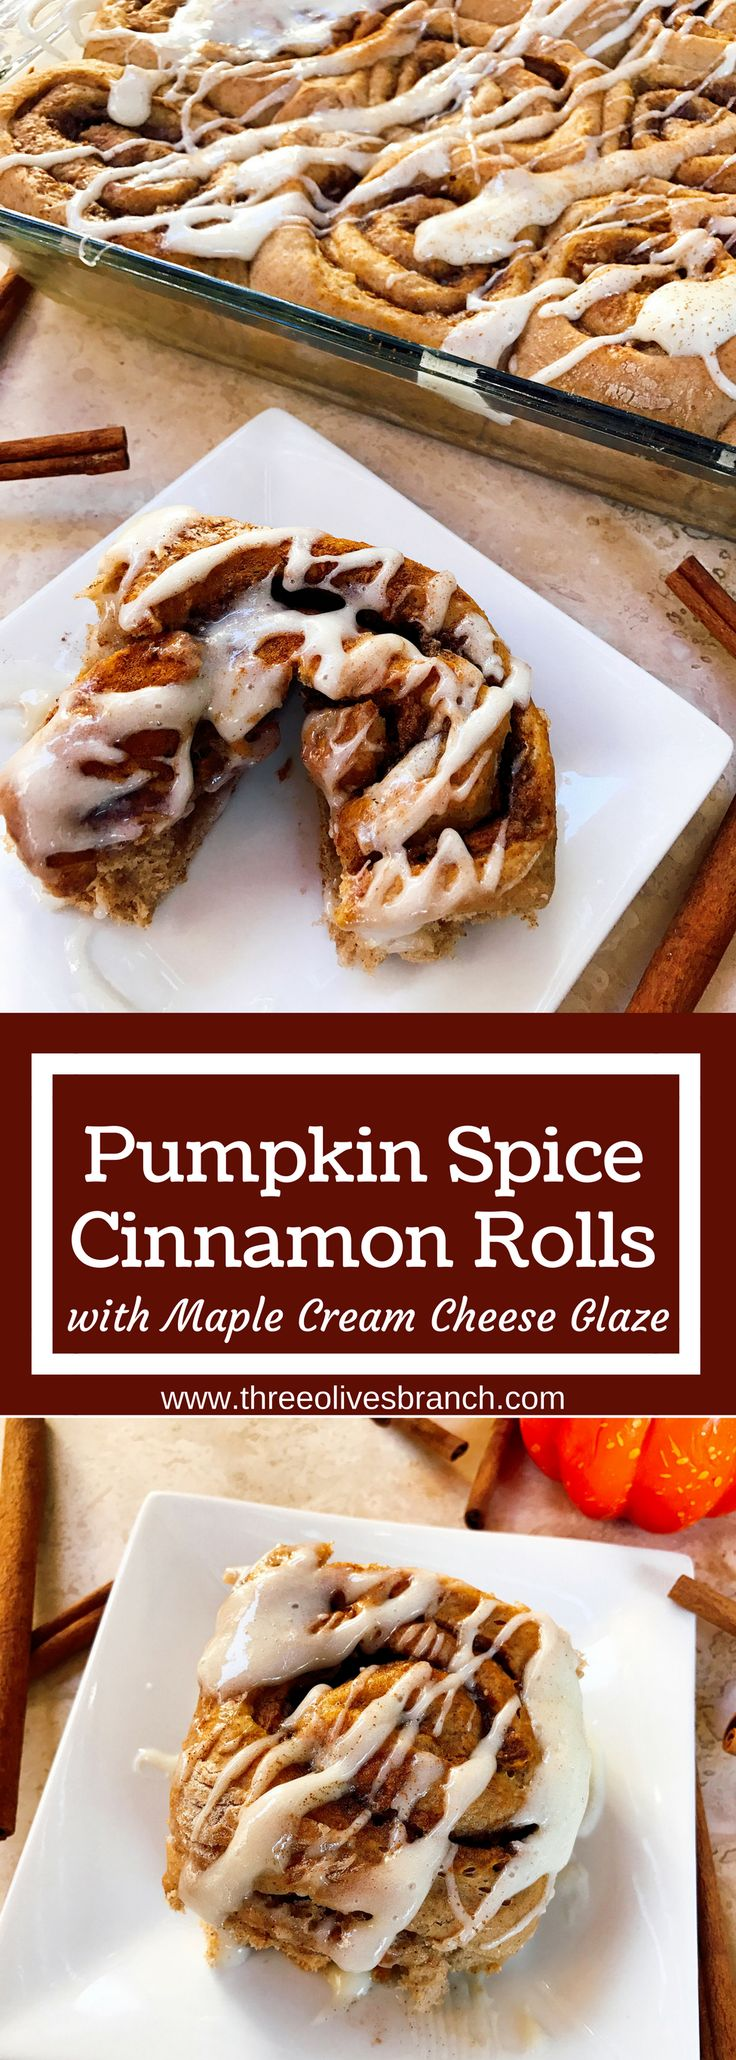 245 best images about Pumpkin Boards on Pinterest ...